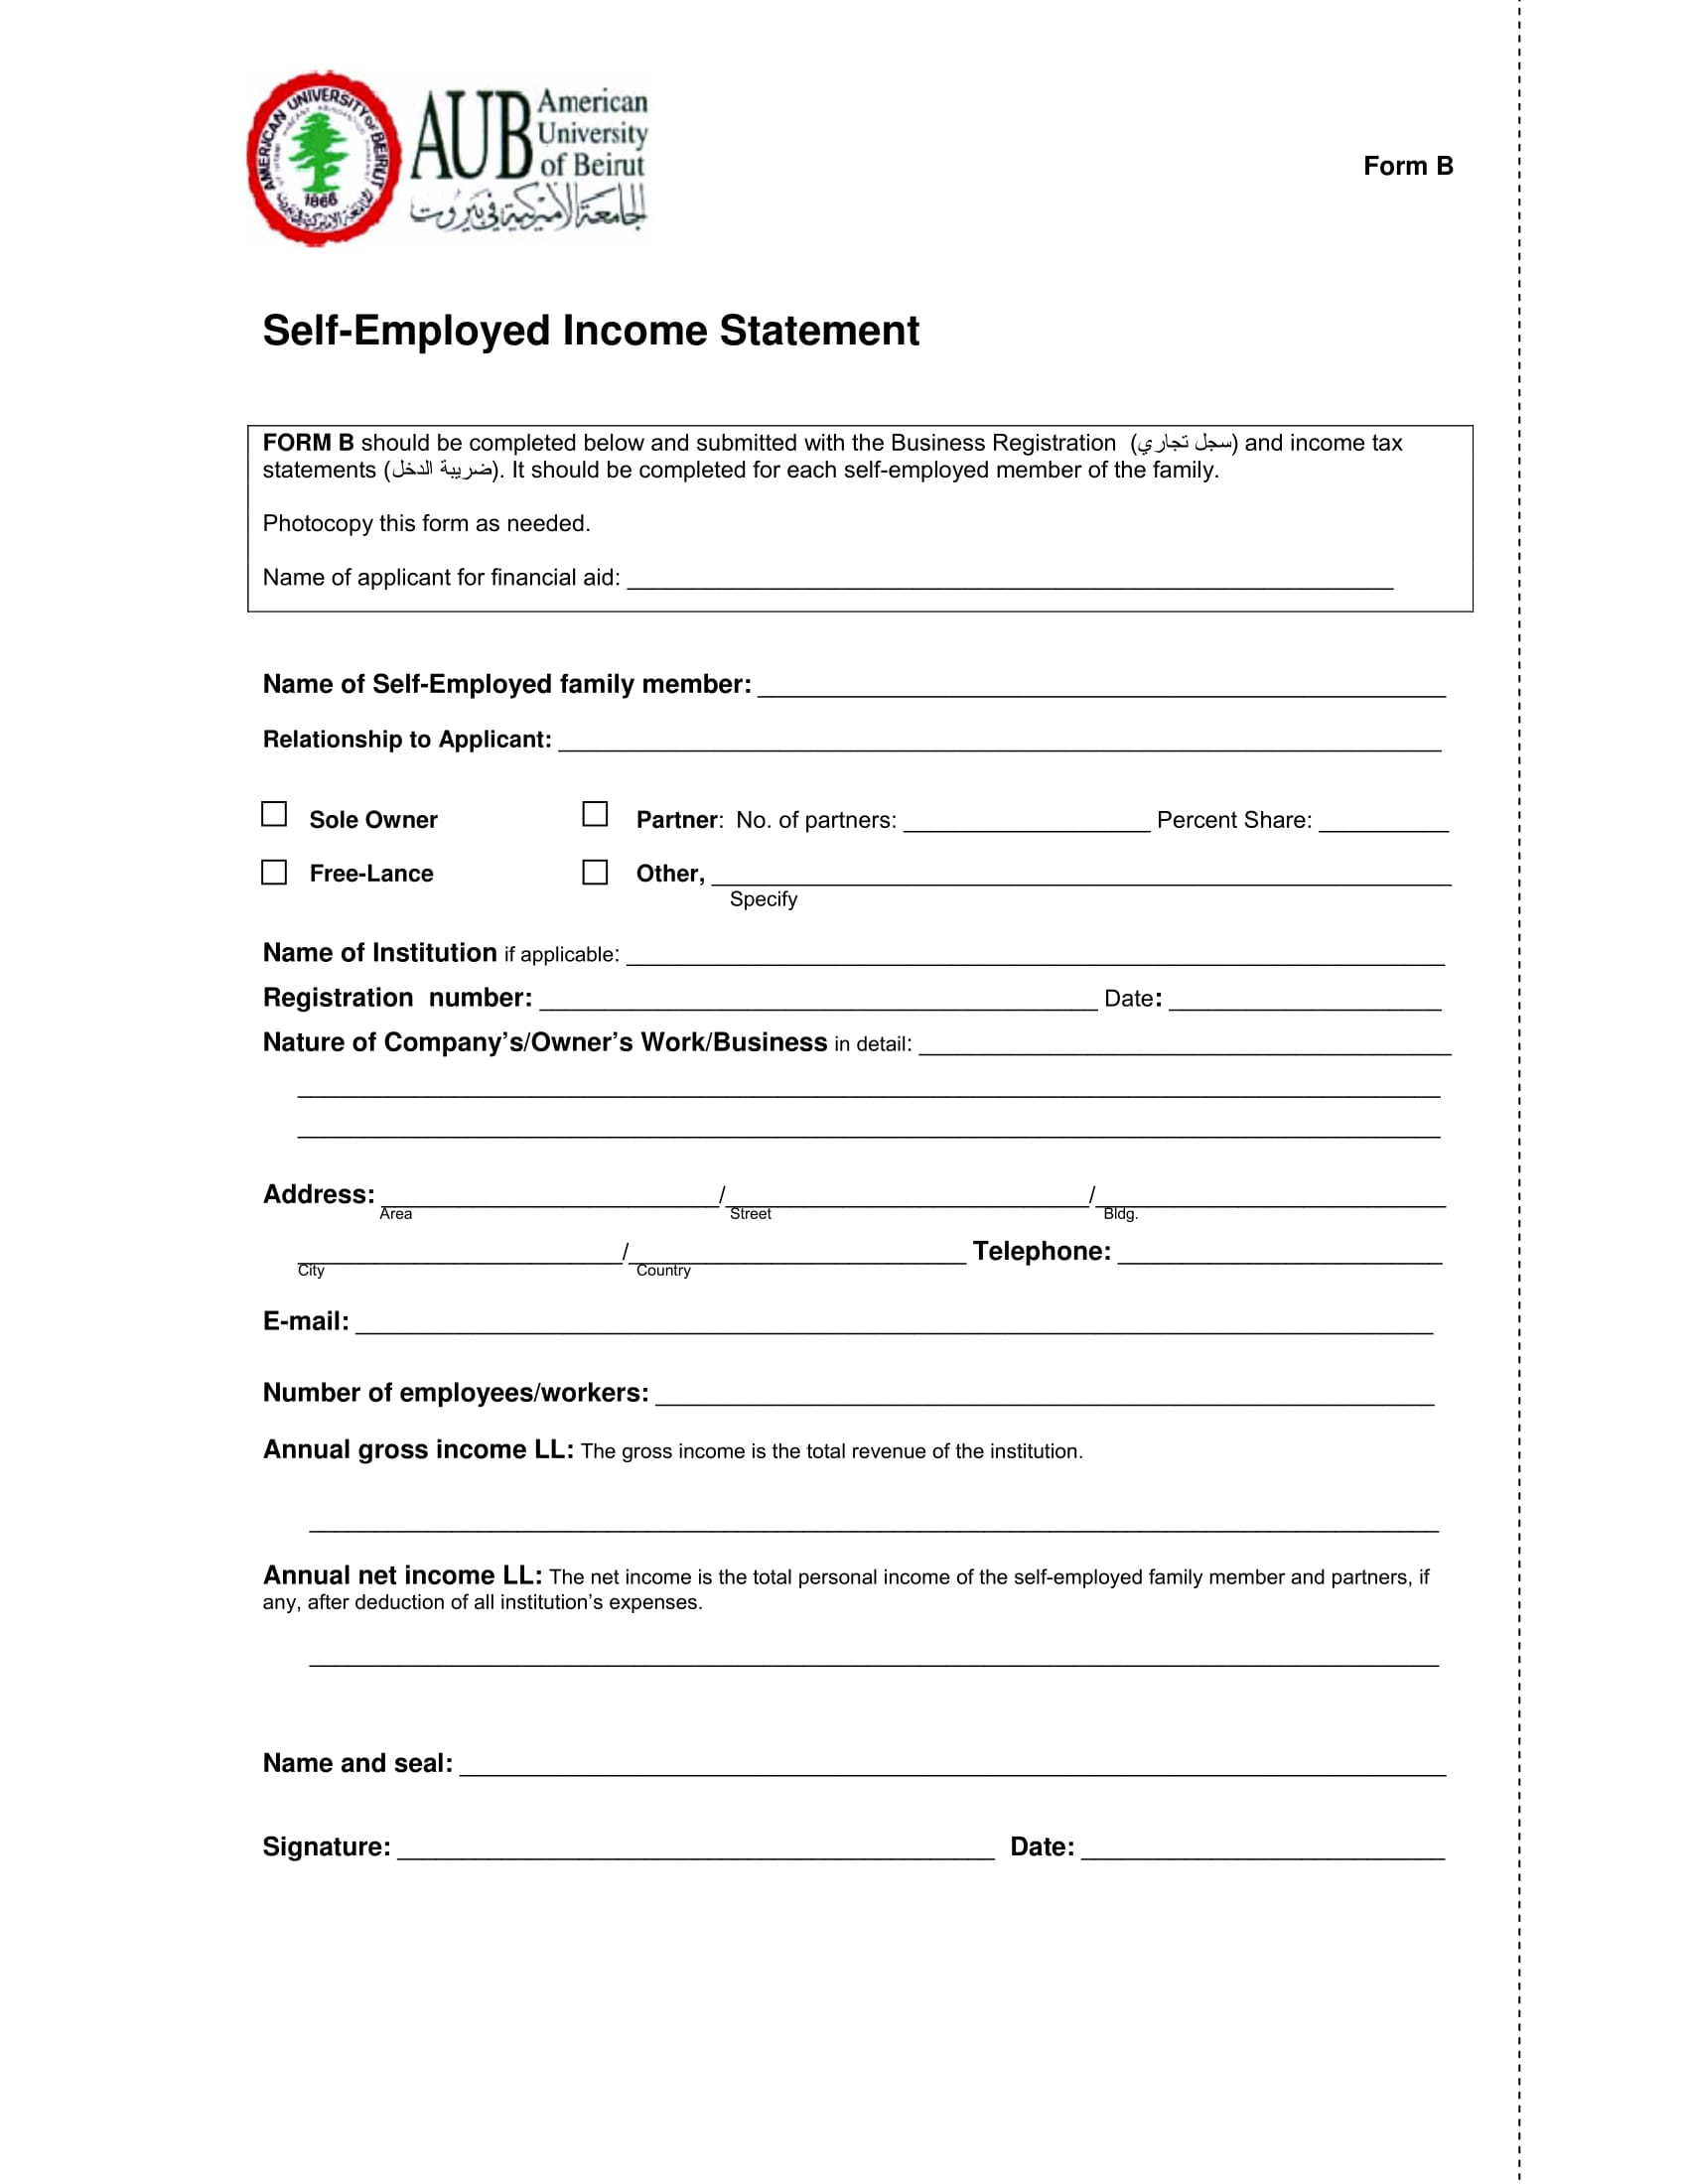 self employed income statement form 2